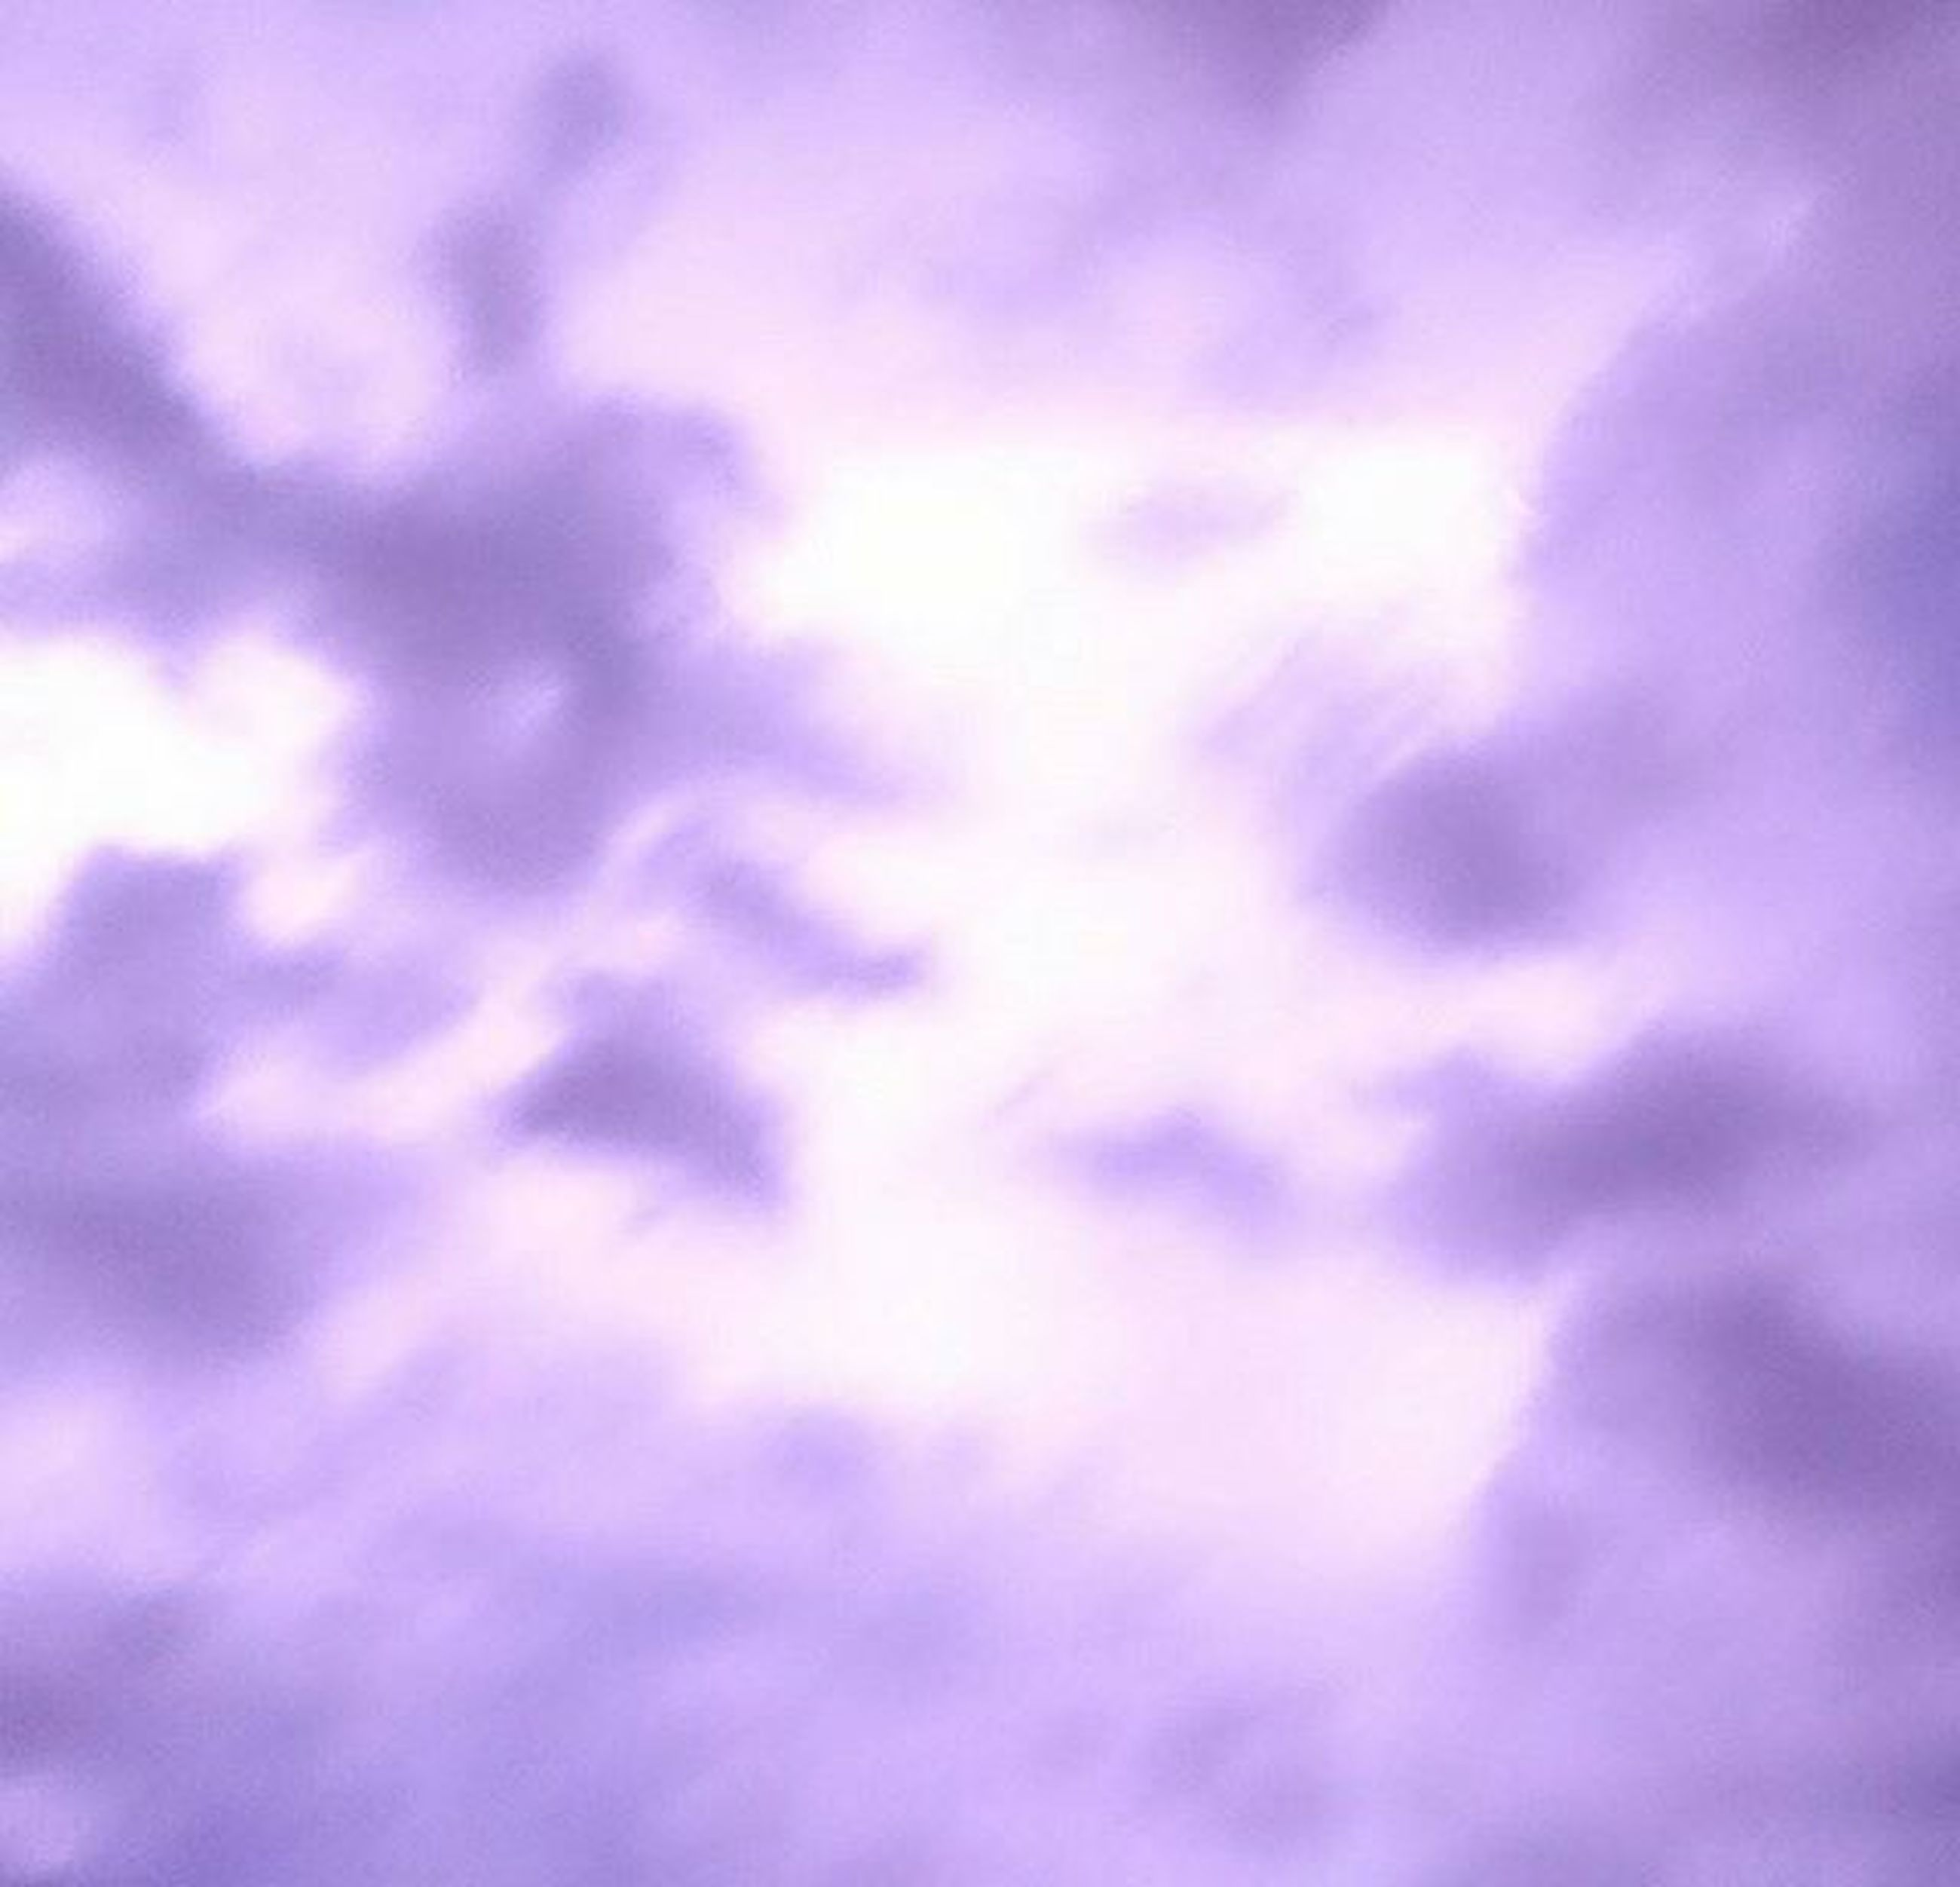 full frame, cloud - sky, sky, backgrounds, low angle view, beauty in nature, cloudy, nature, sky only, tranquility, scenics, weather, purple, outdoors, blue, cloud, no people, cloudscape, tranquil scene, day